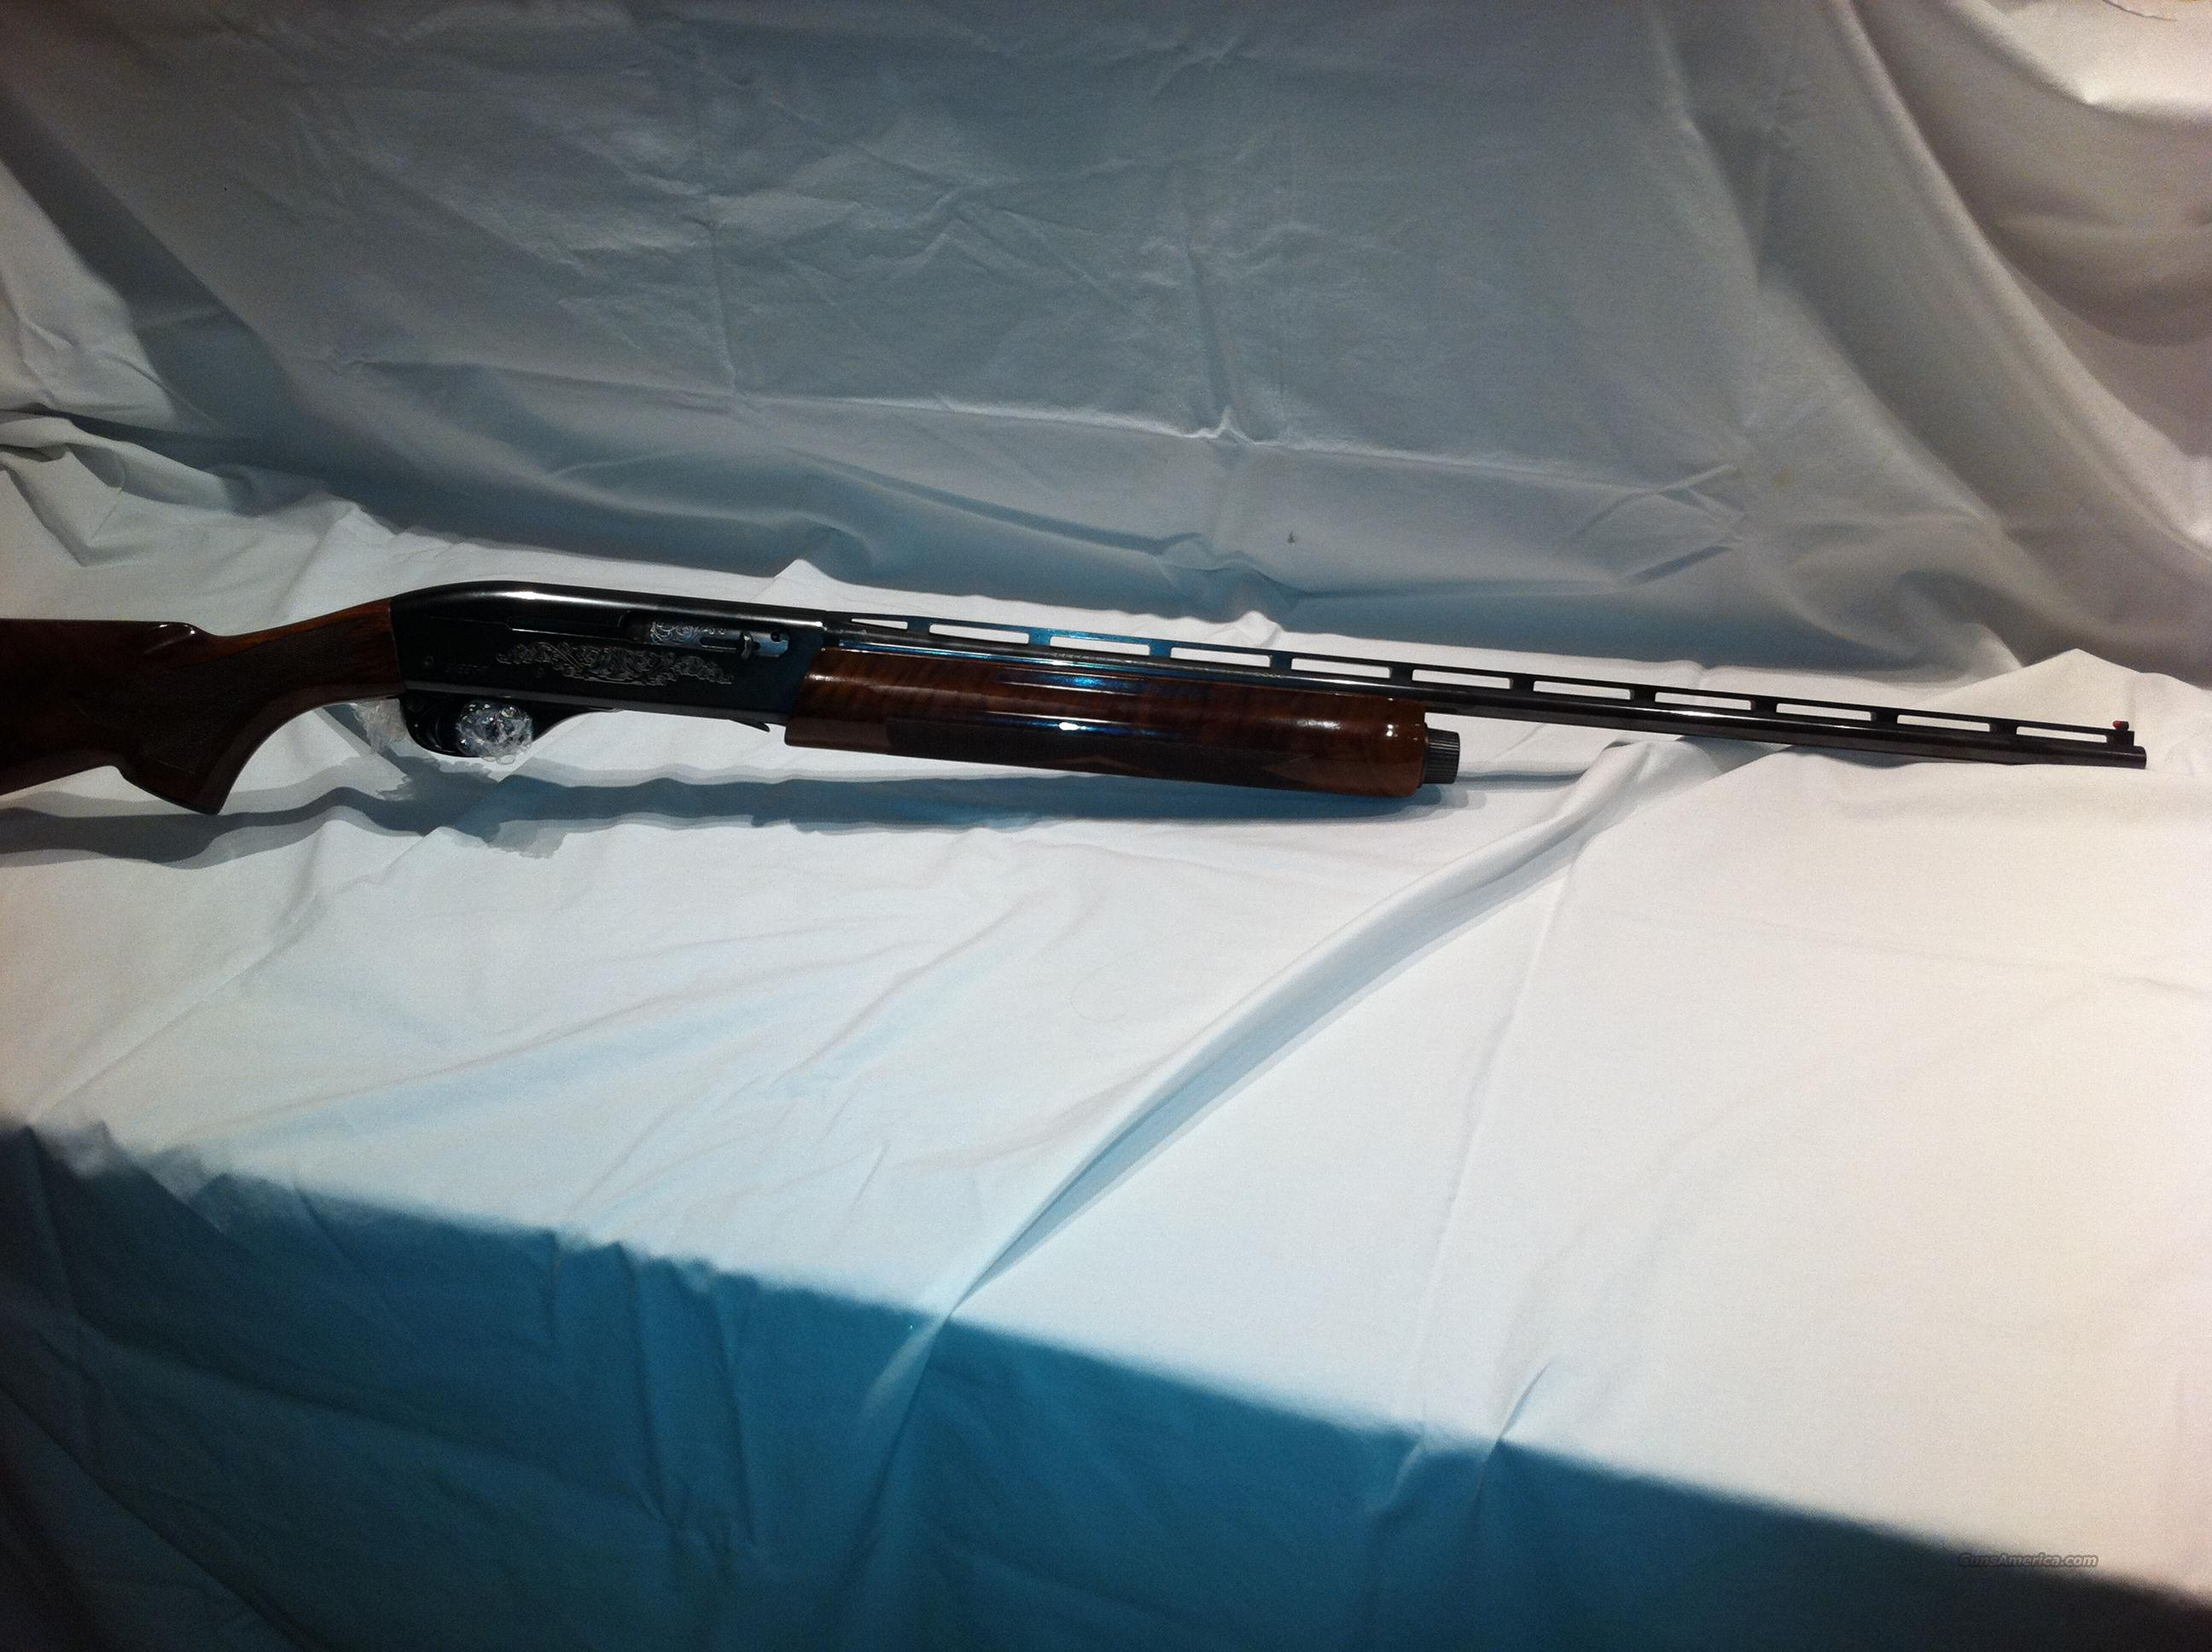 Remington 1100 LW 410 Skeet  Guns > Shotguns > Remington Shotguns  > Autoloaders > Trap/Skeet